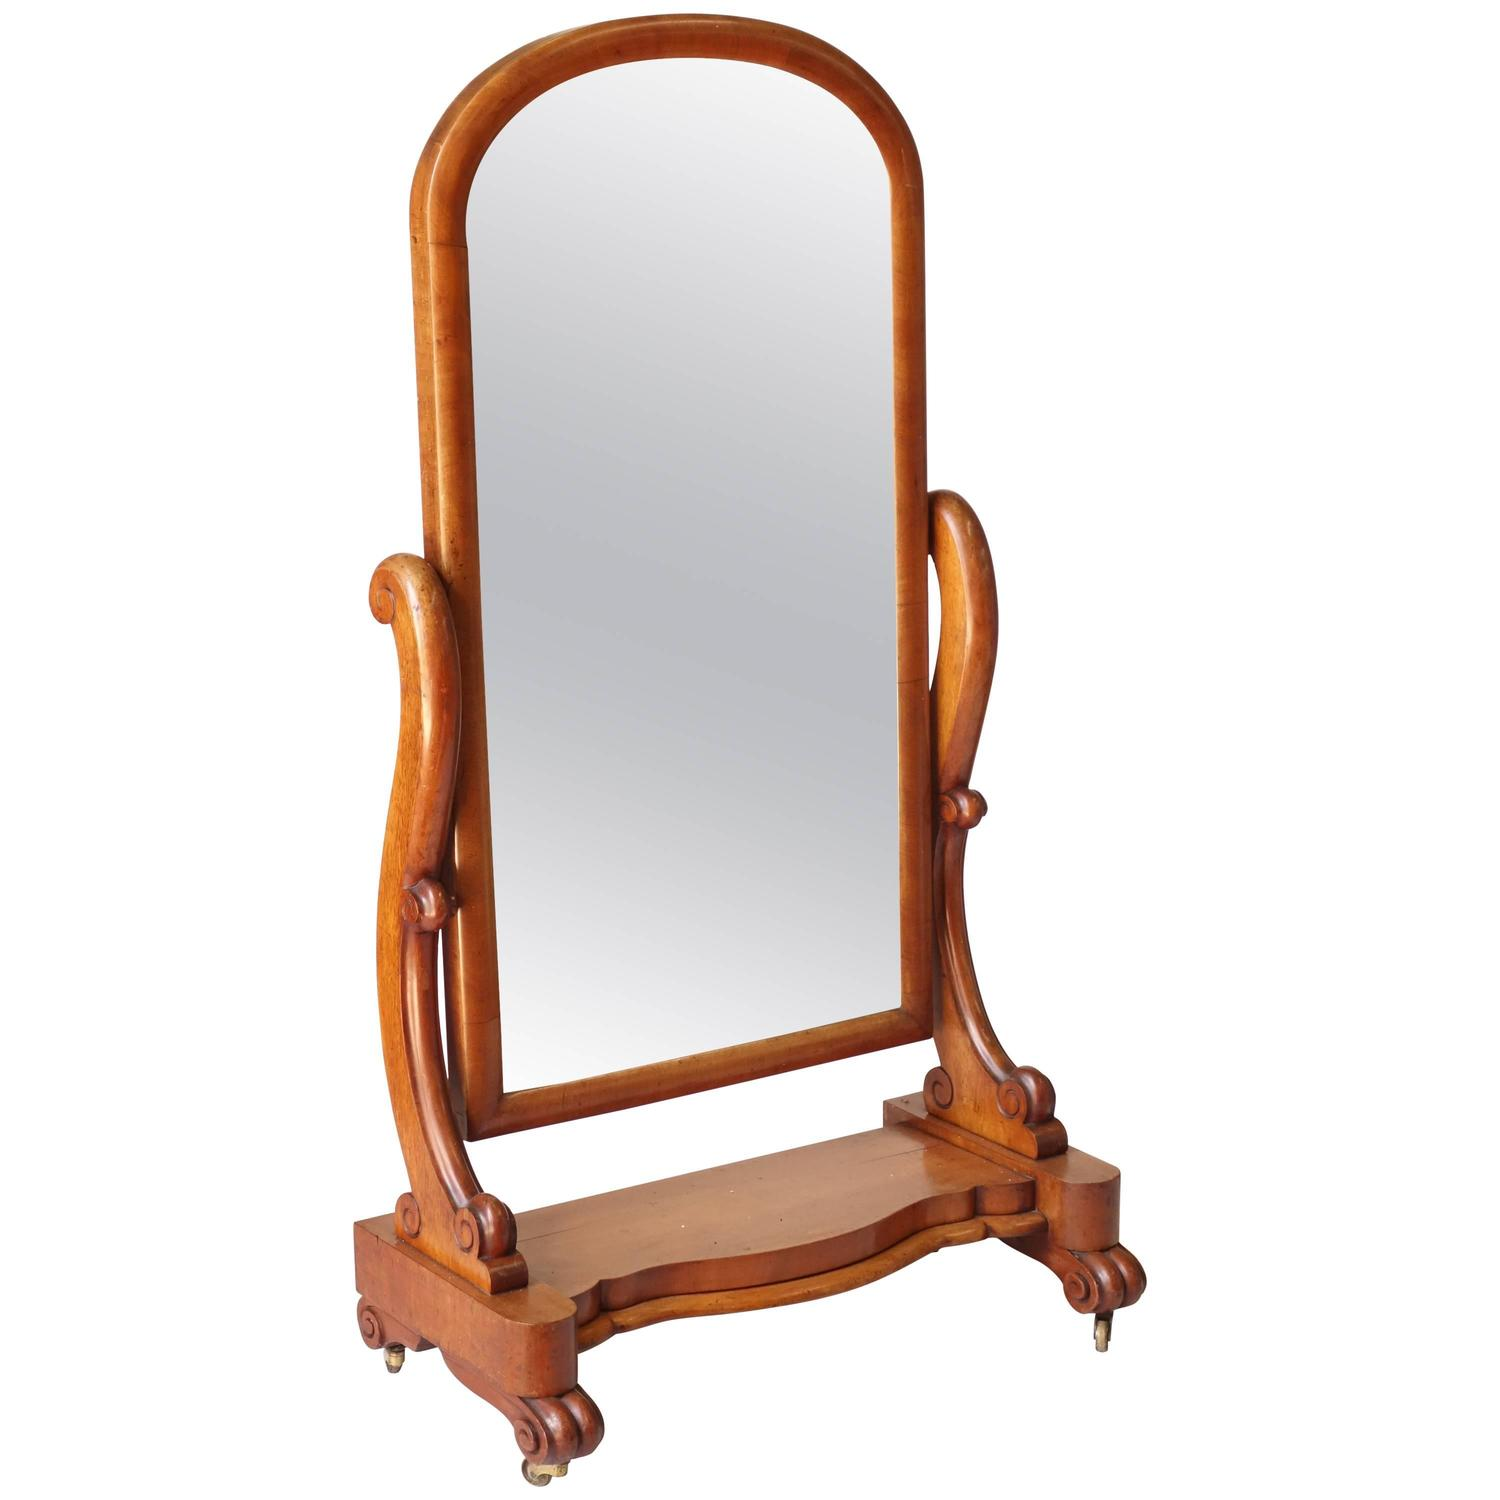 Victorian floor standing mirror for sale at 1stdibs for Floor length mirror for sale